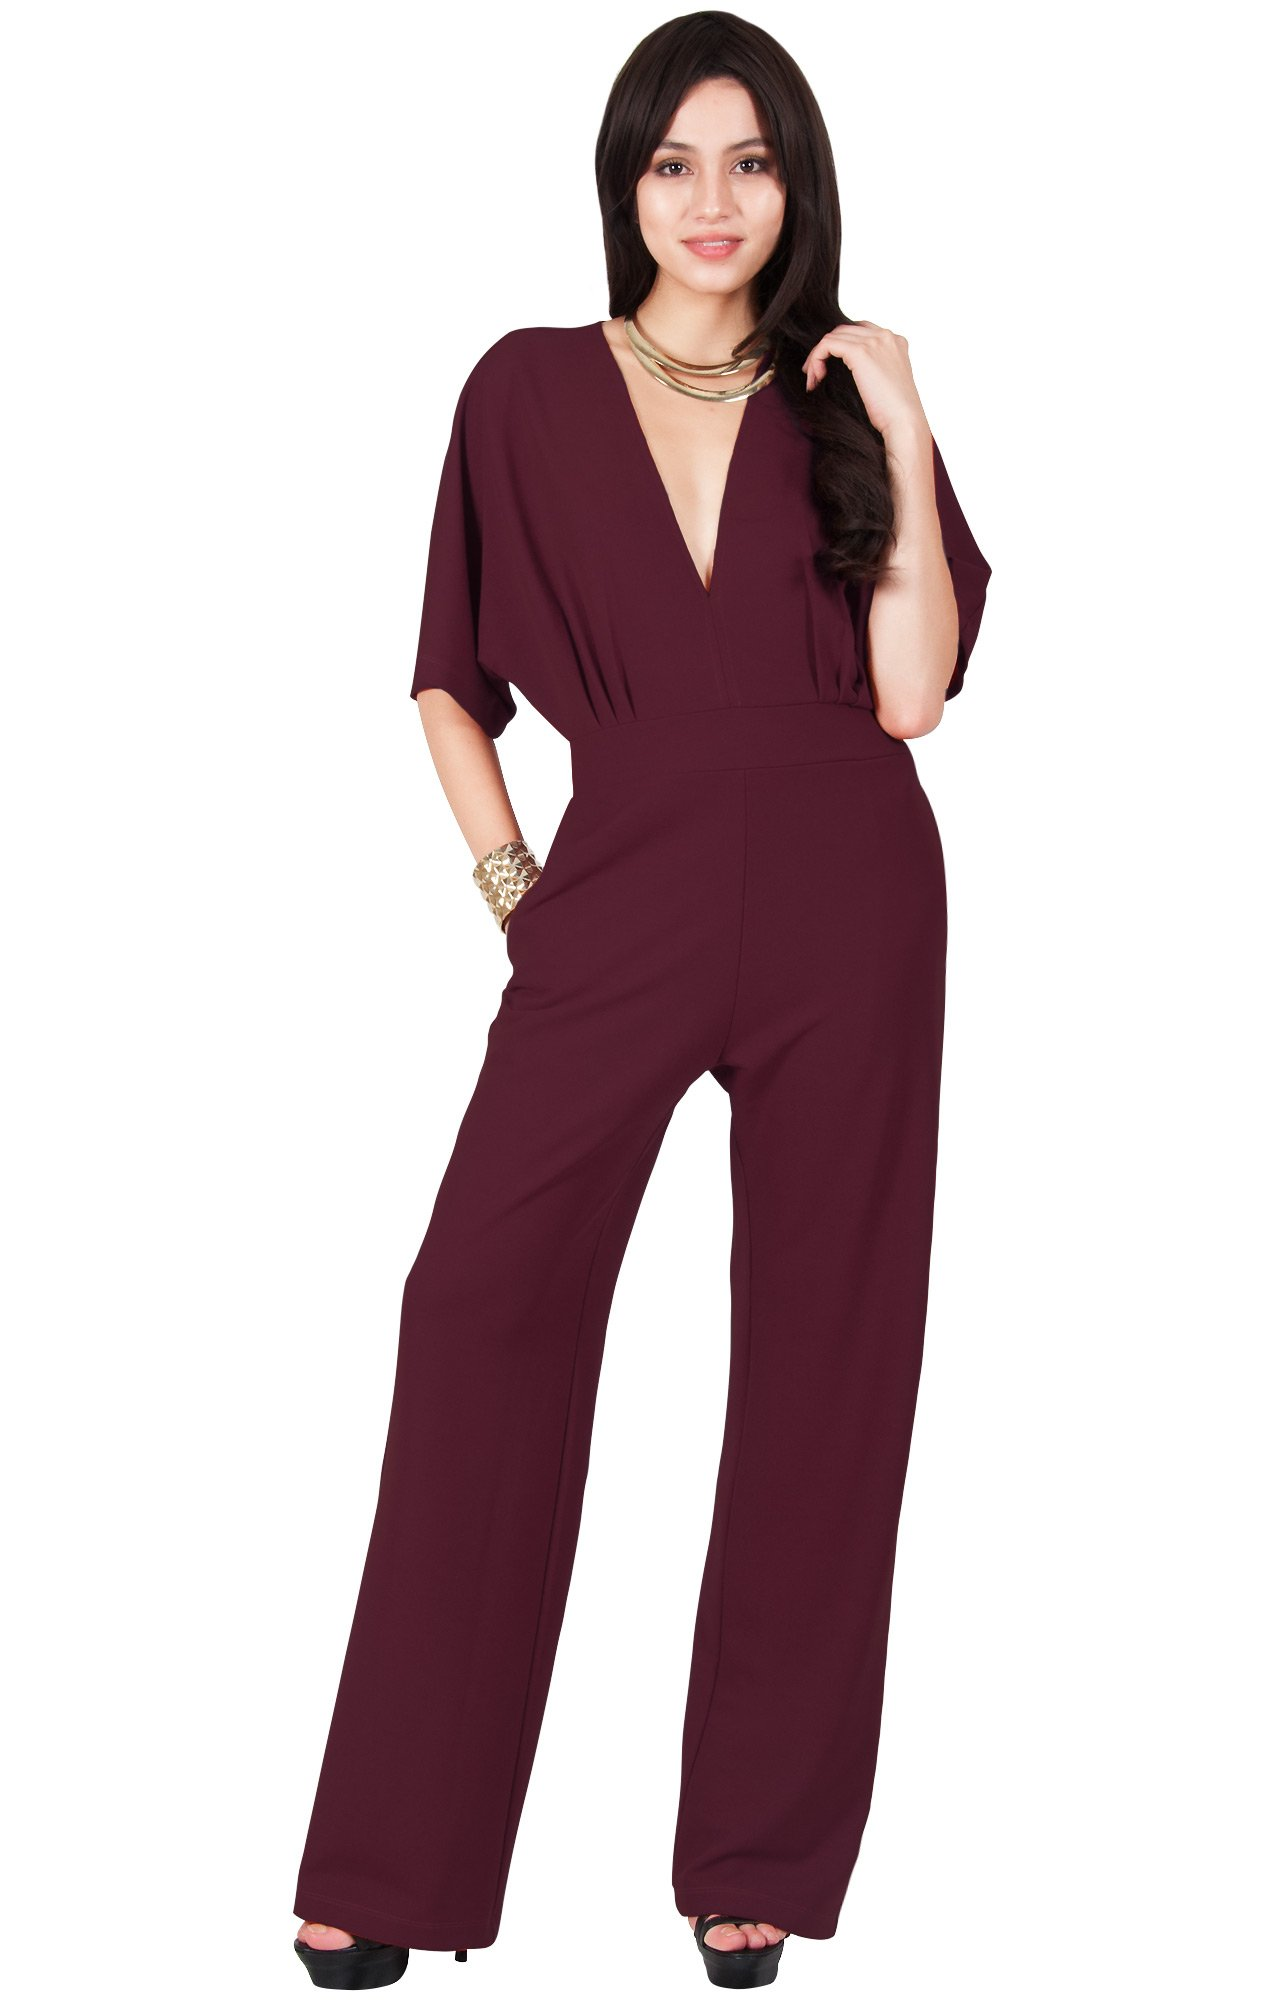 Viris Zamara Plus Size Womens Long Sexy V-Neck Short Sleeve Slimming Pockets Wide Leg Work Office Party Semi Formal Spring Jumpsuit Jumpsuits Pantsuit Playsuit Romper, Maroon Wine Red 2XL 18-20